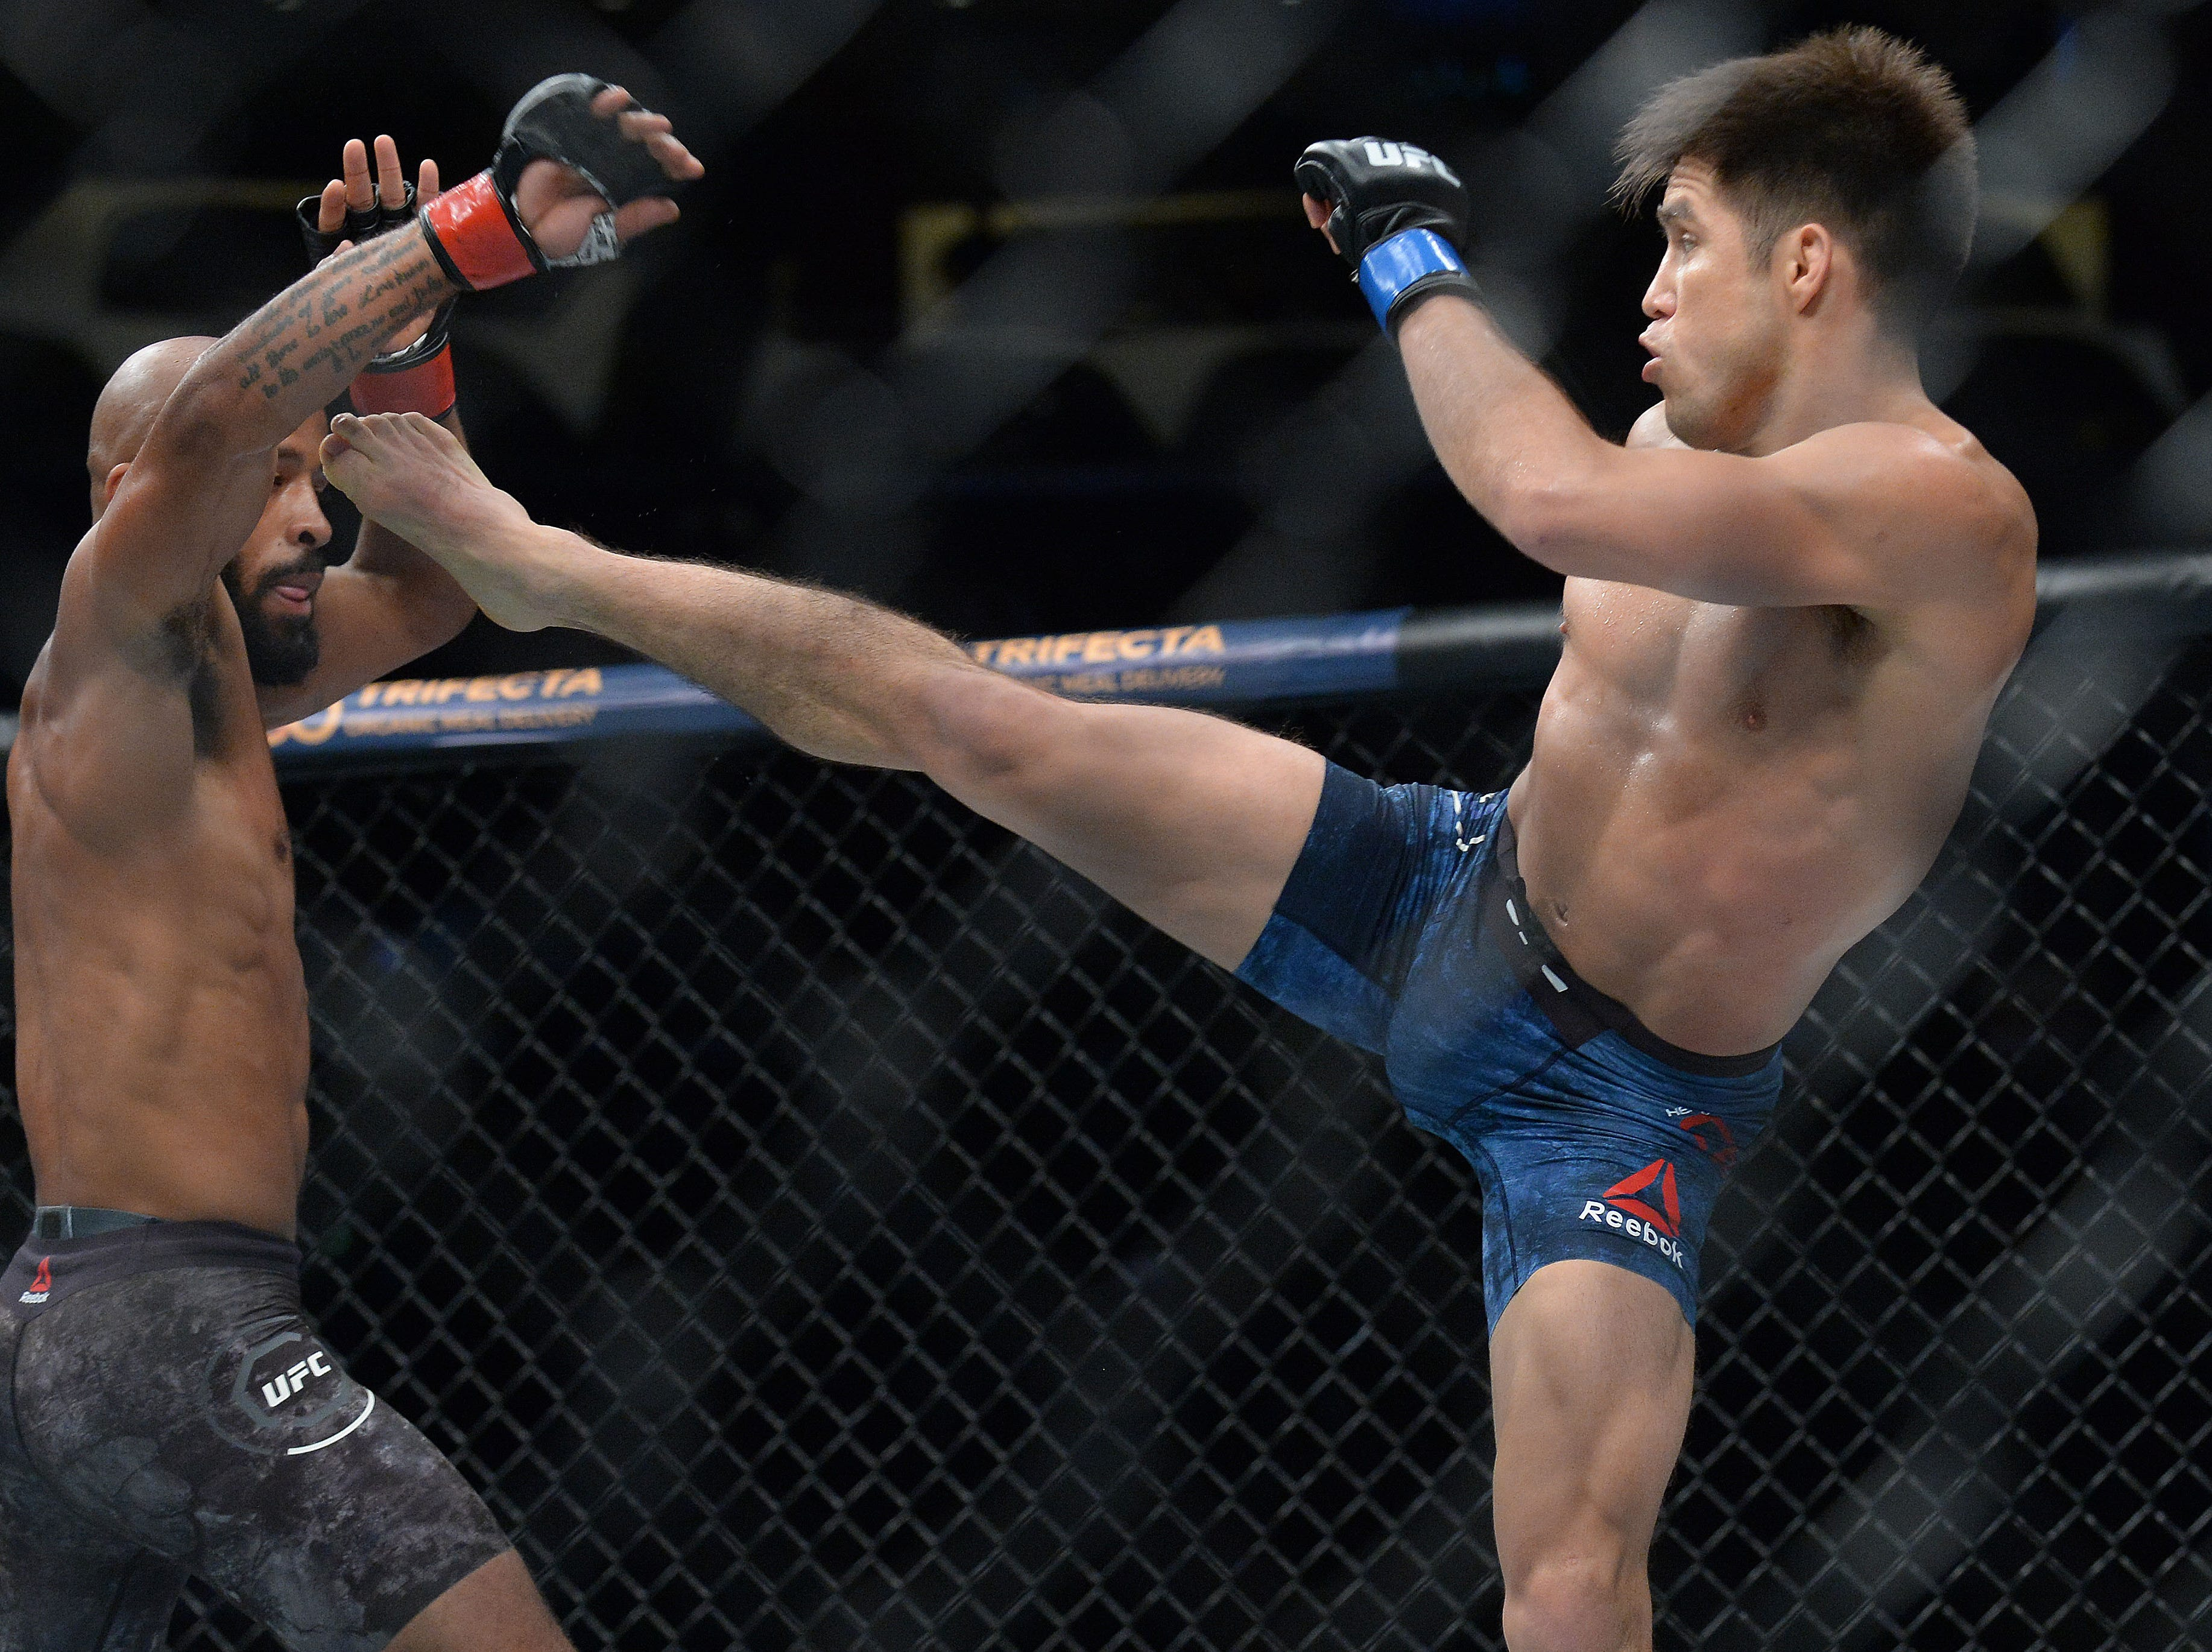 Henry Cejudo moves in with a kick against Demetrious Johnson during UFC 227 at Staples Center.